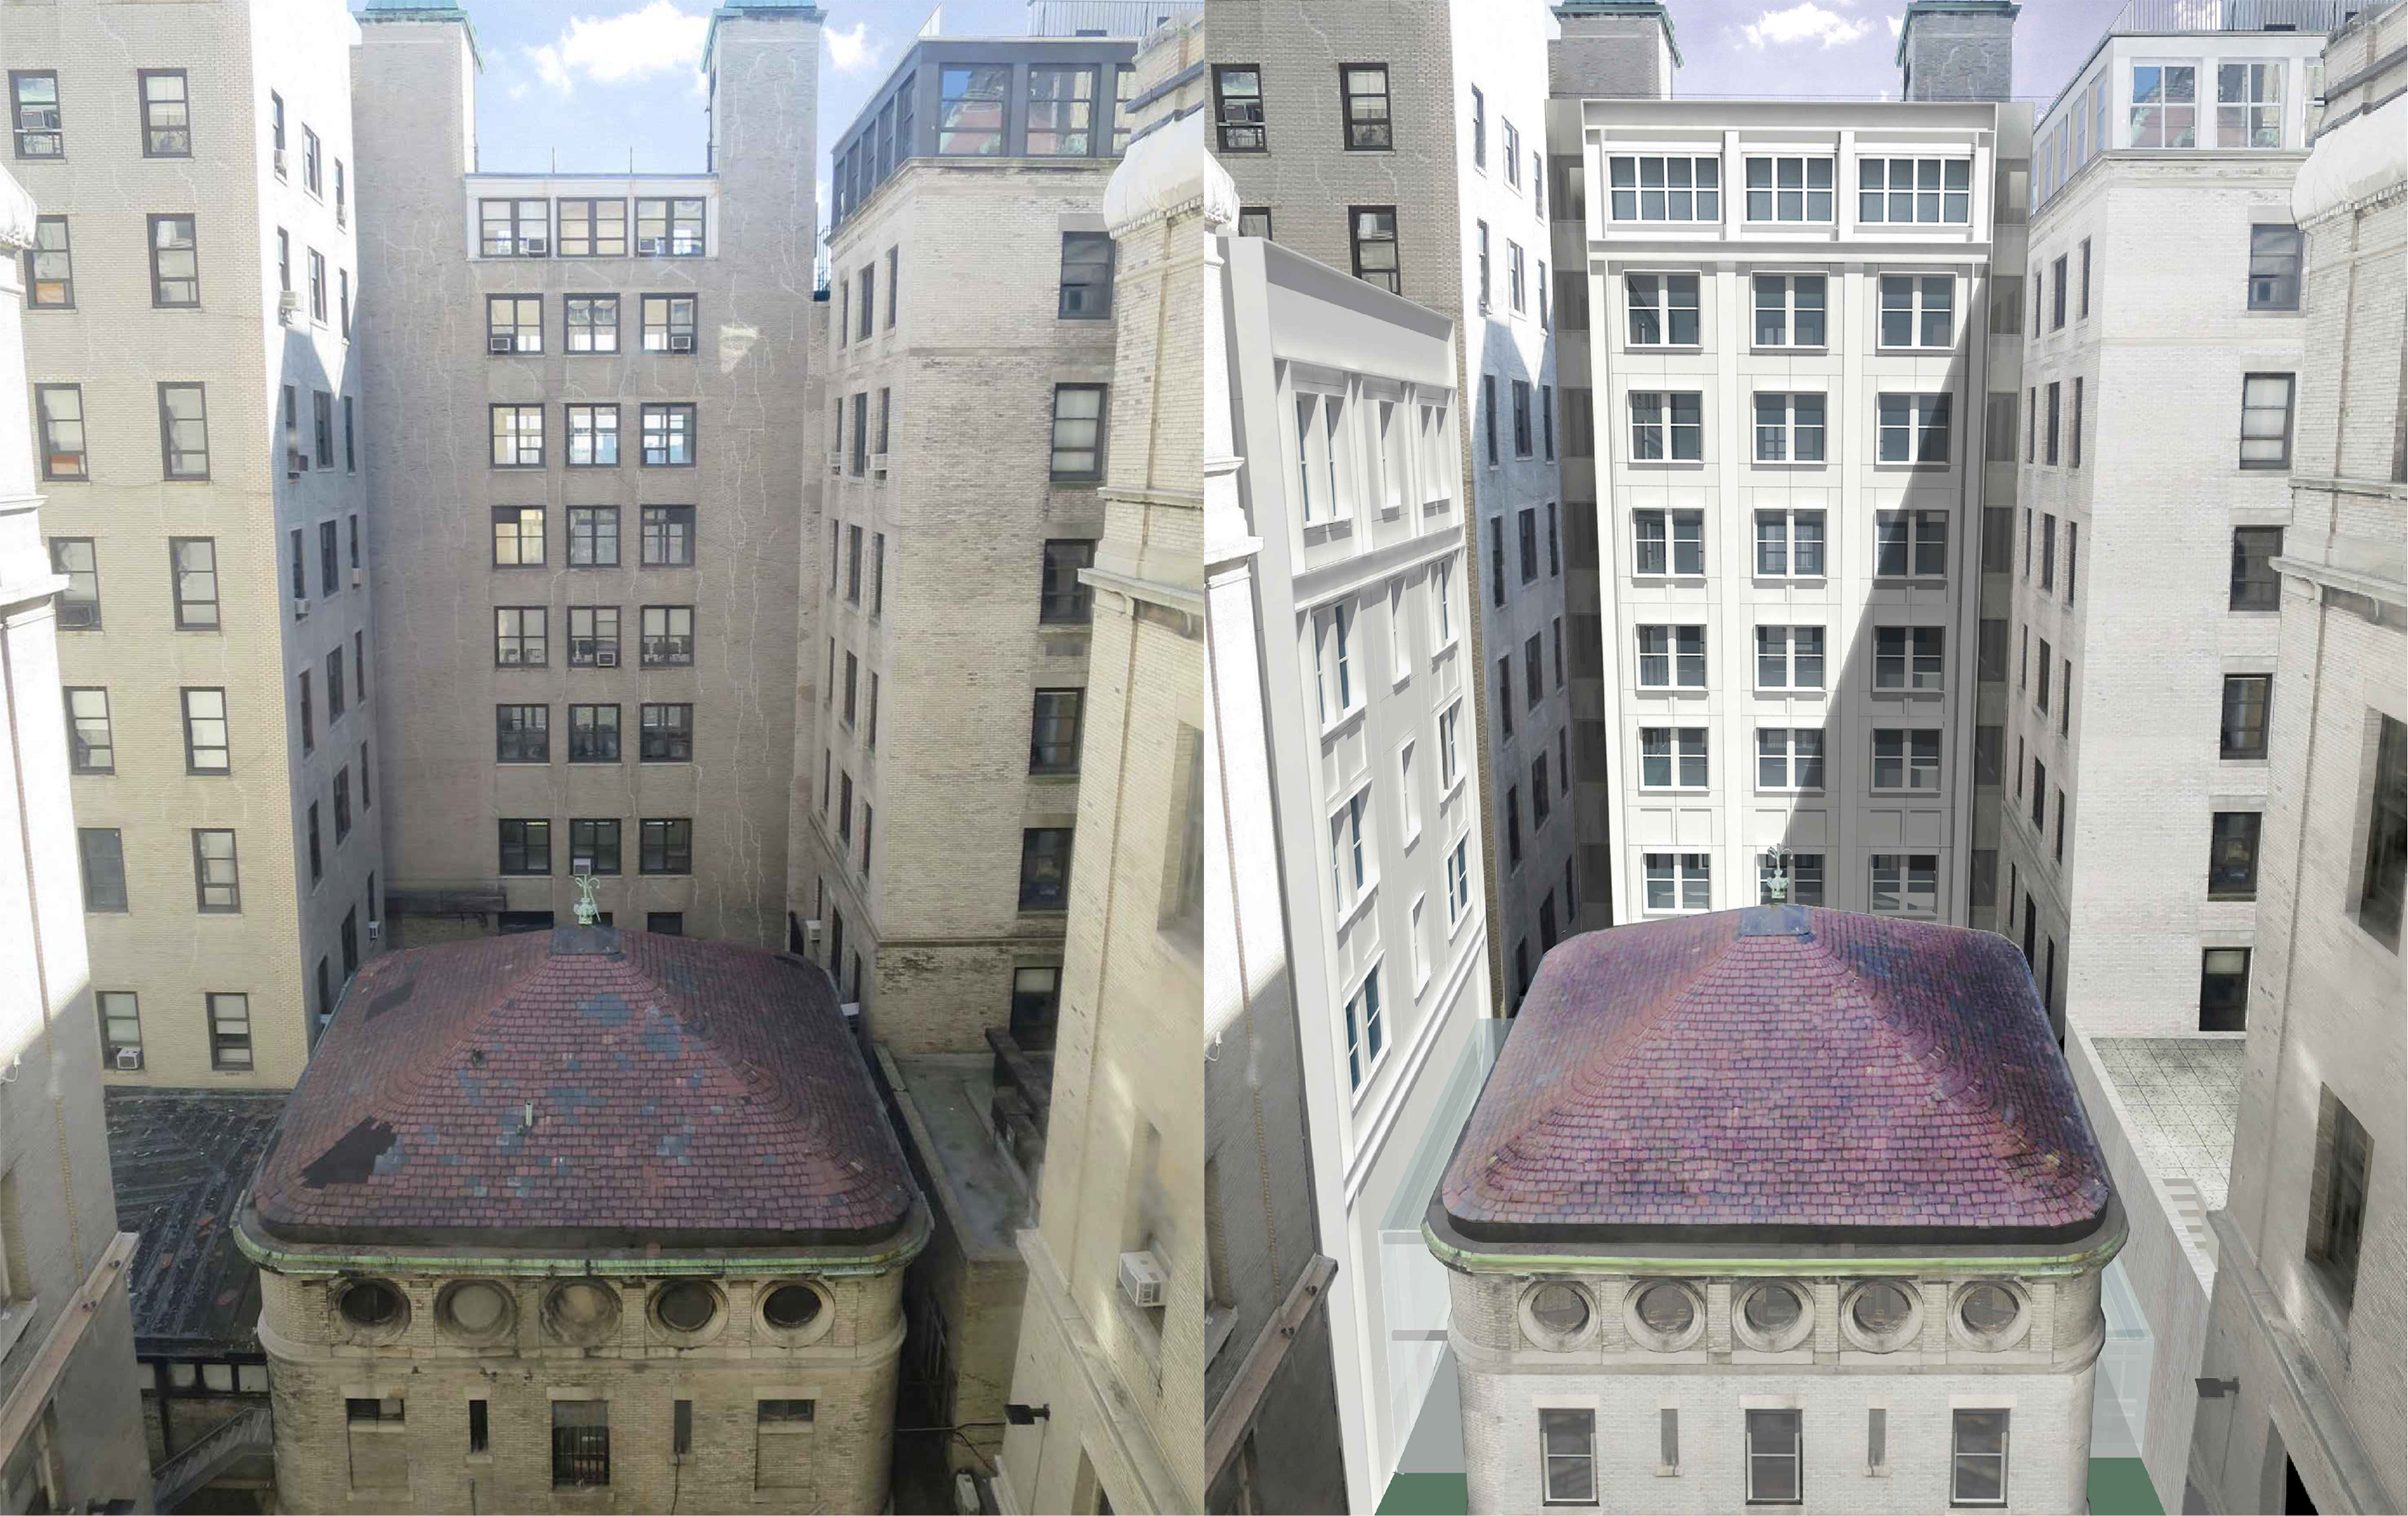 Existing conditions of interior courtyard and carriage house at 30 Morningside Drive (left) and rendering showing restored carriage house and infill between the Scrymser and Plant pavilions